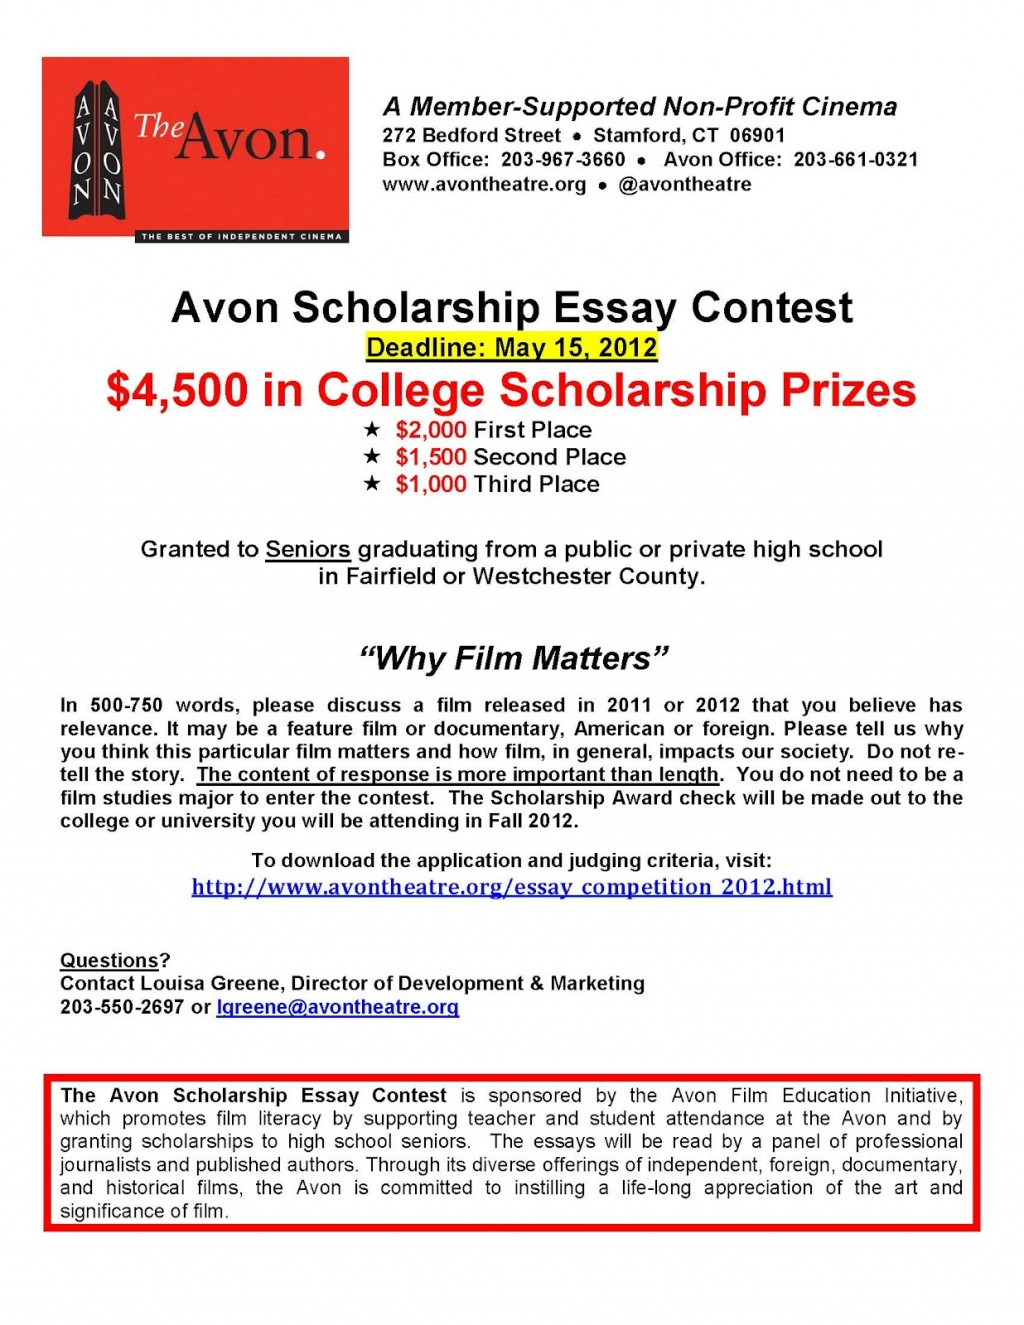 003 Non Essay Scholarships Example No College Scholarship Prowler Free For High School Seniors Avonscholarshipessaycontest2012 In Texas California Class Of Short Imposing 2019 Students 2017 Large